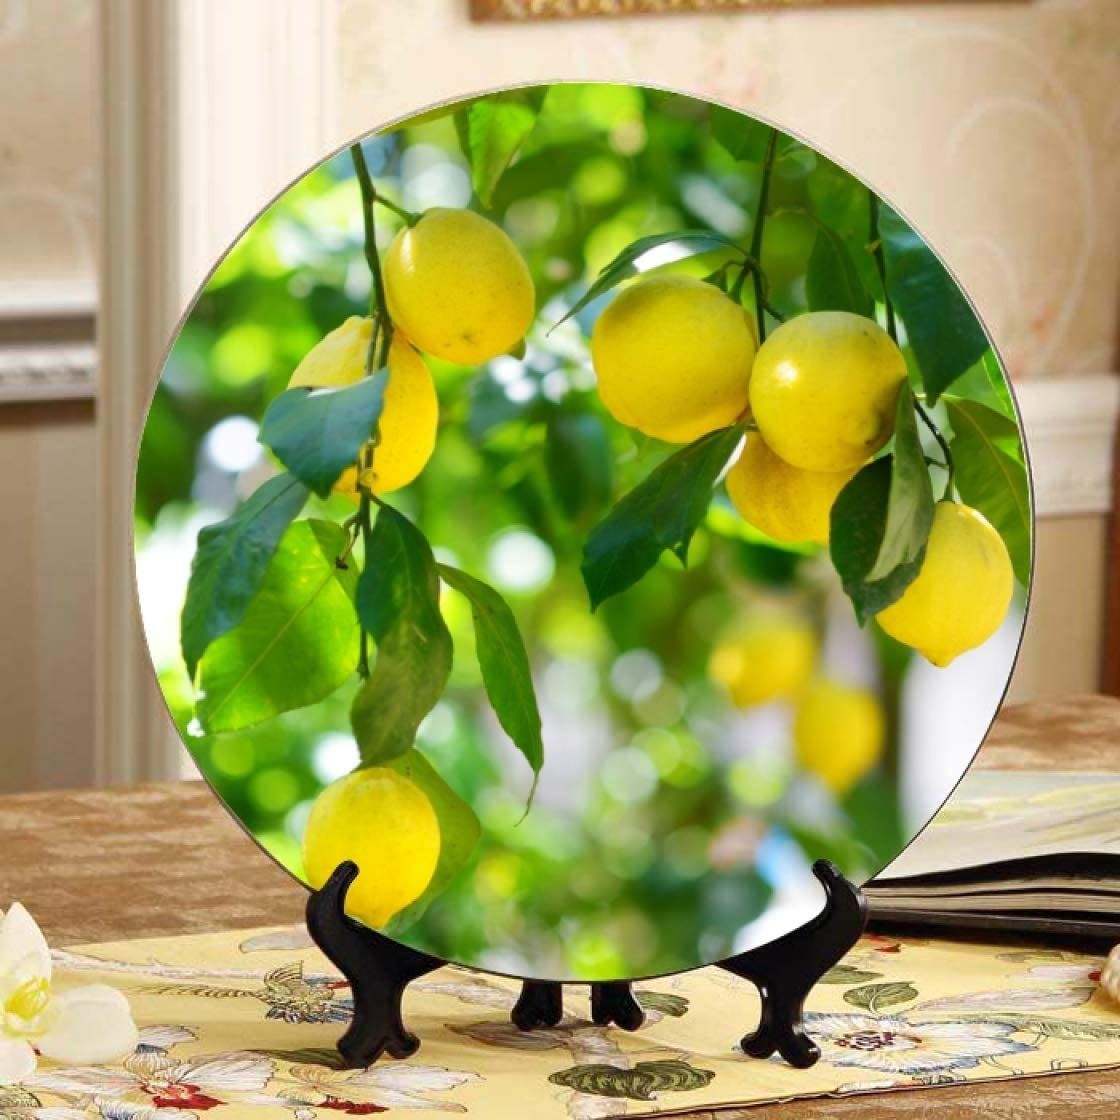 Outlet ☆ Free Shipping Yellow Lemons On Lemon Tree Plates Displays Japan Maker New Decorator Plate Home